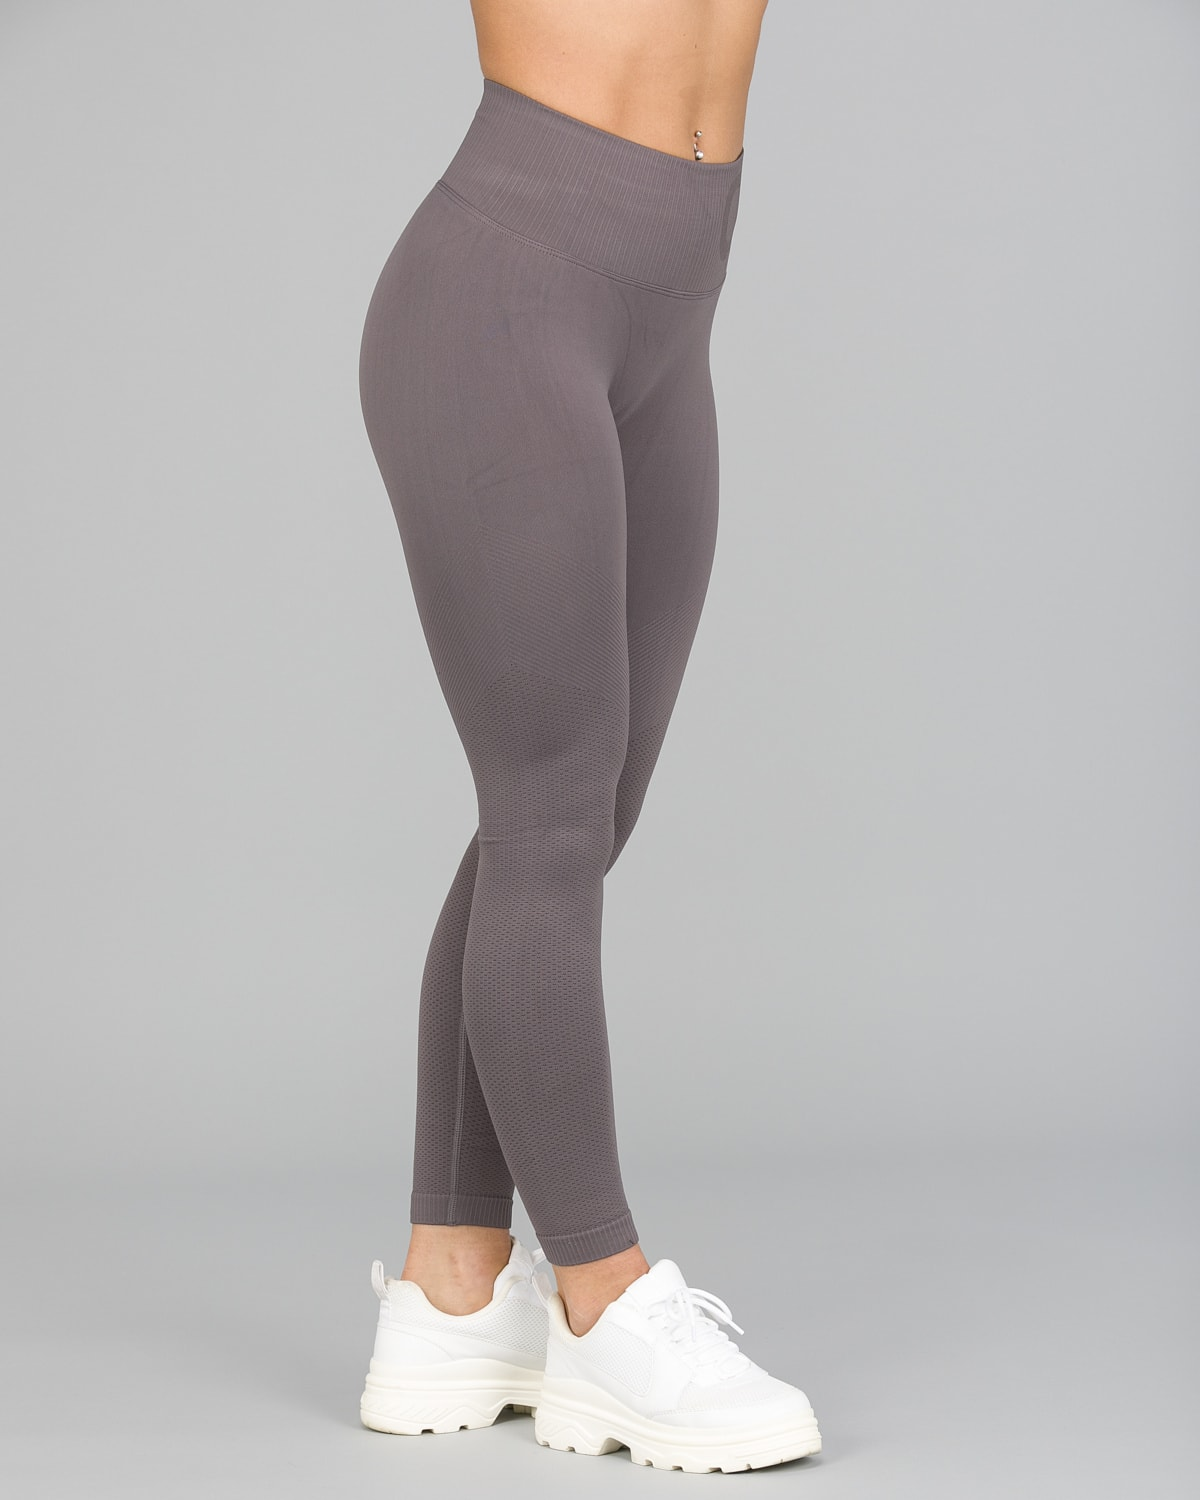 Aim'n Concrete Attention Seamless Tights12